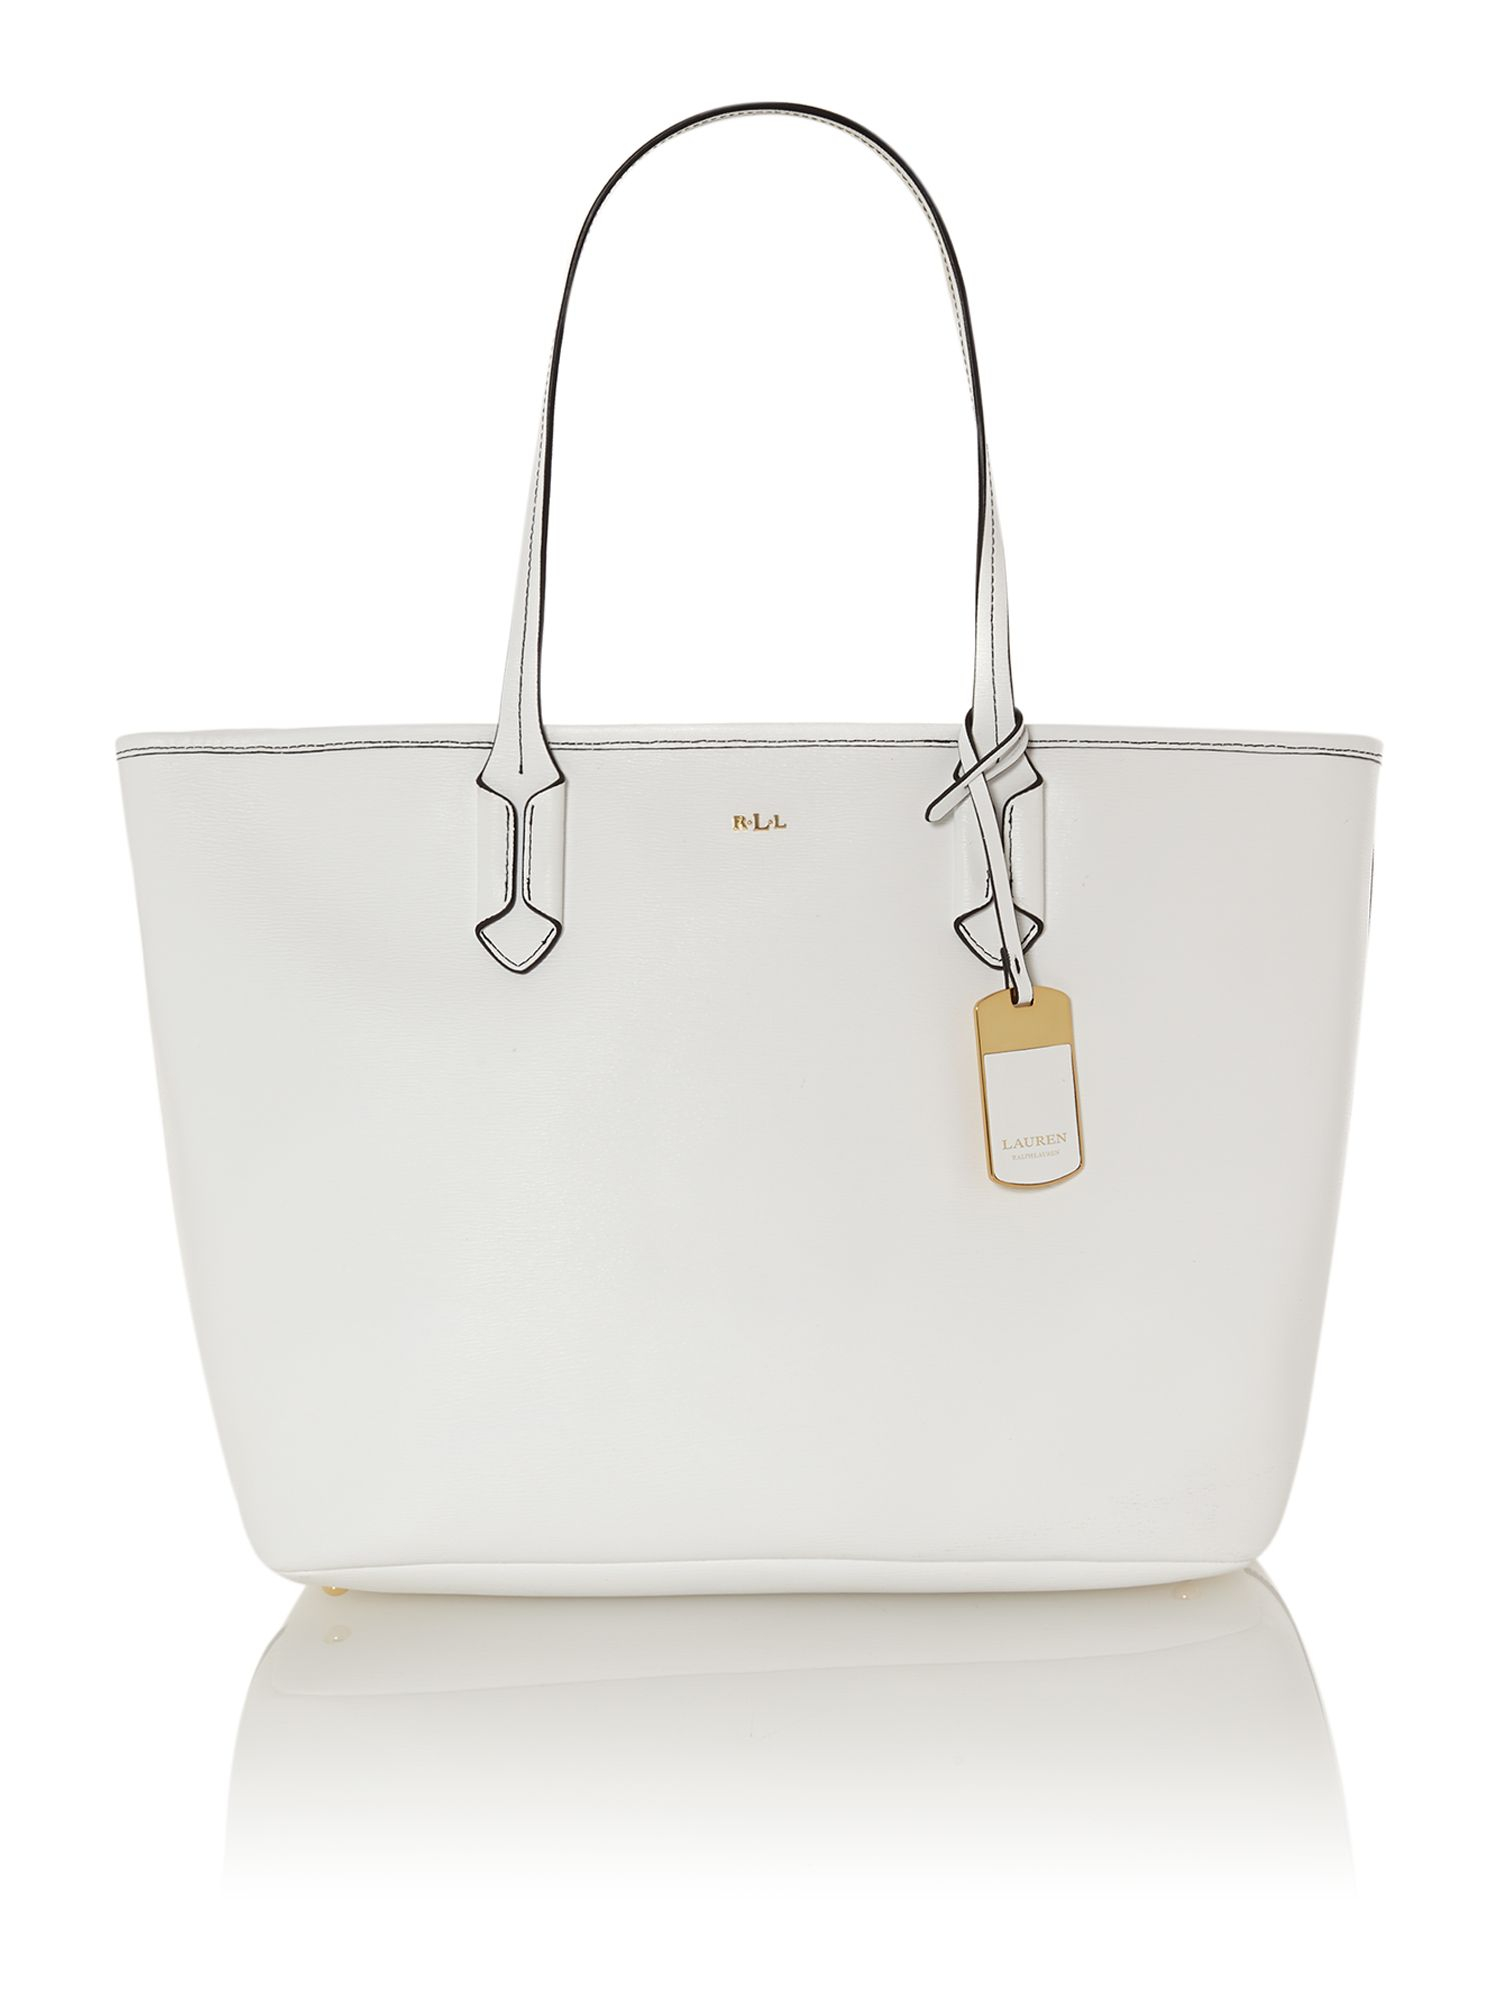 de65cfdf597c Lauren By Ralph Lauren Tate White Large Tote Bag in White